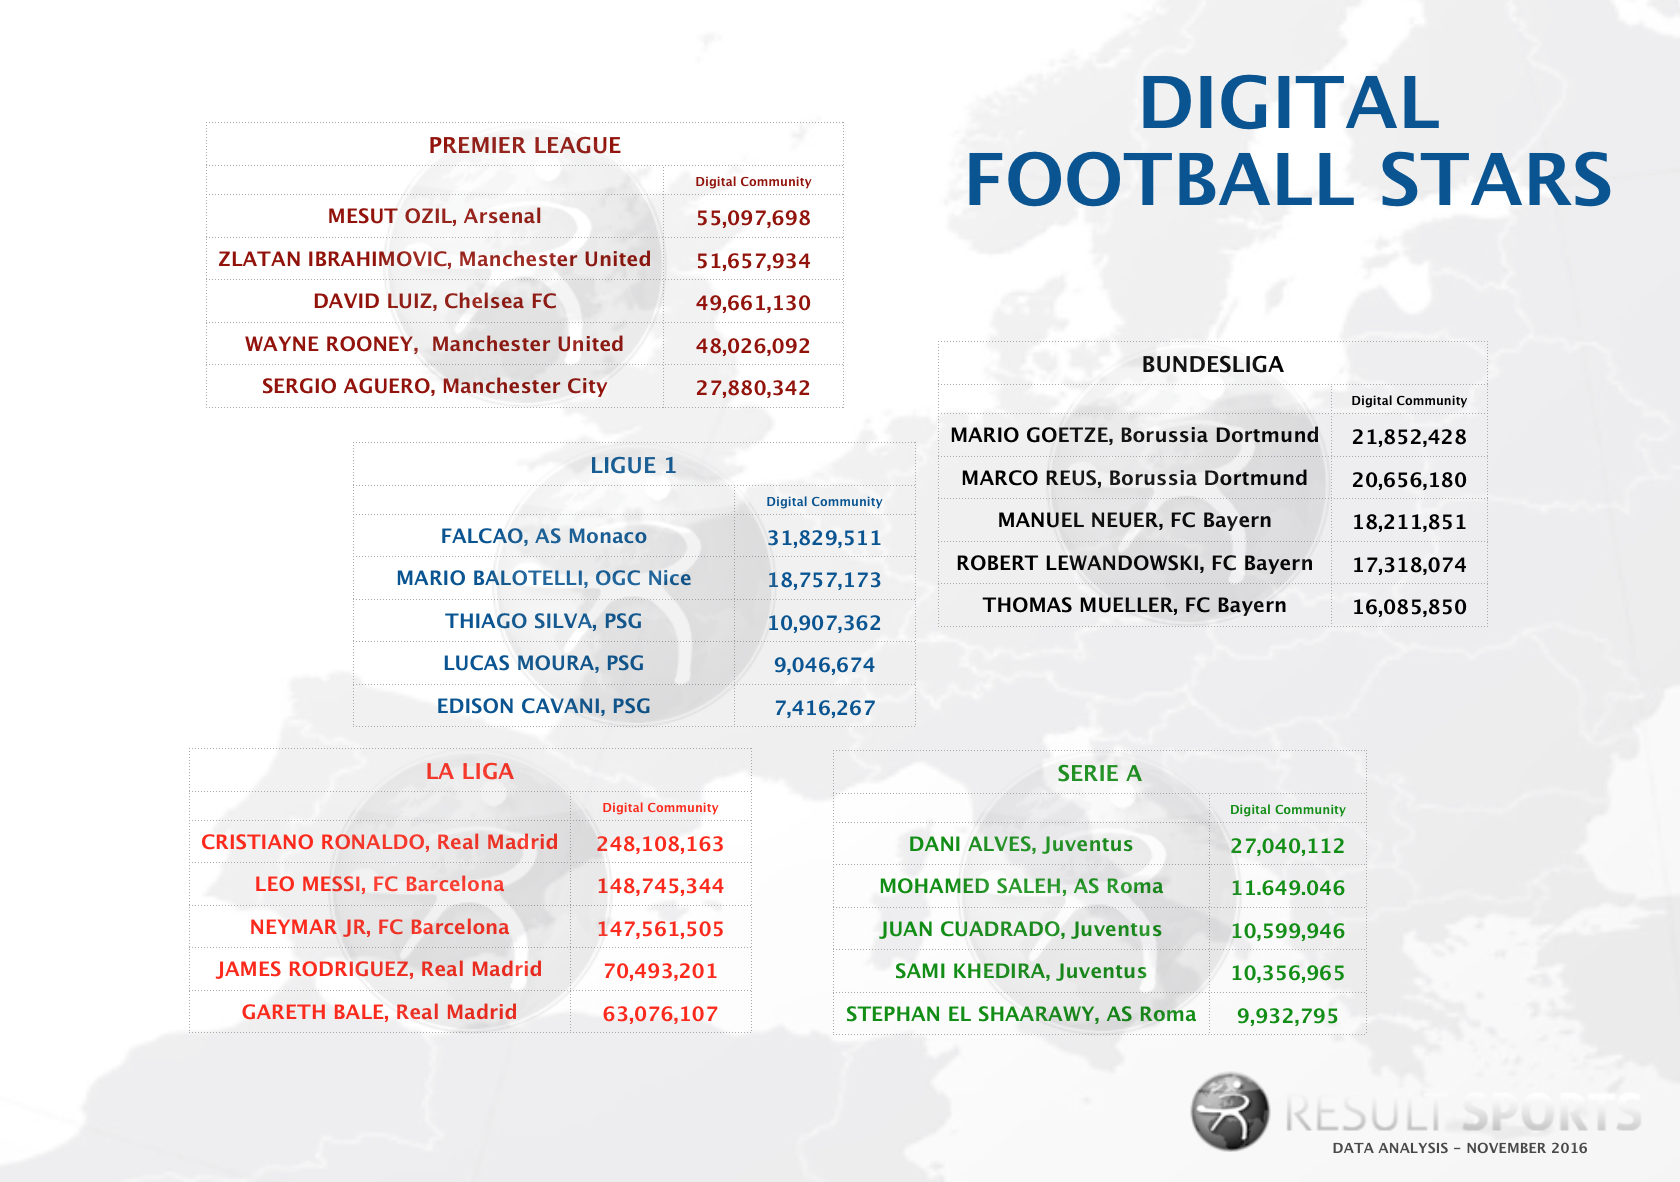 digital-football-stars-23-11-2016-final